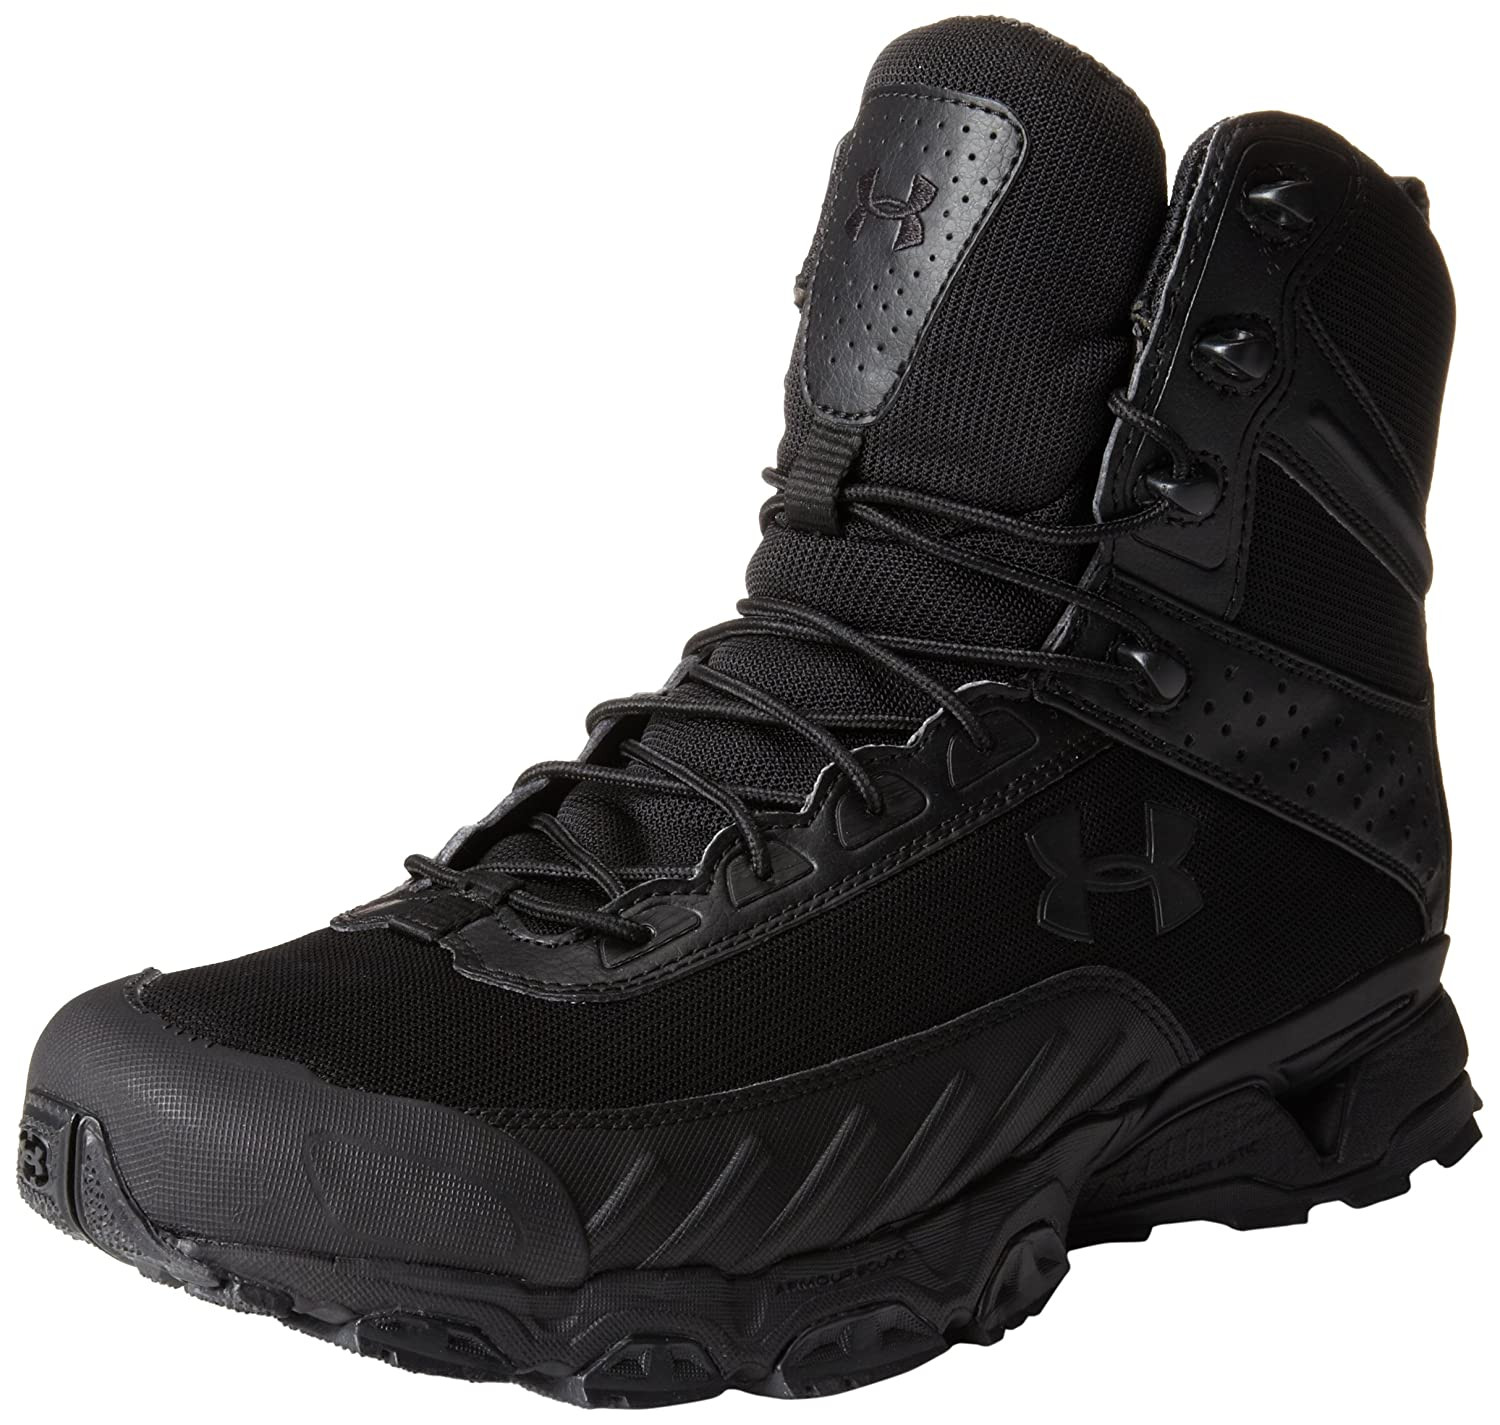 Top 10 Best Military Tactical Boots For Men Reviews 2016